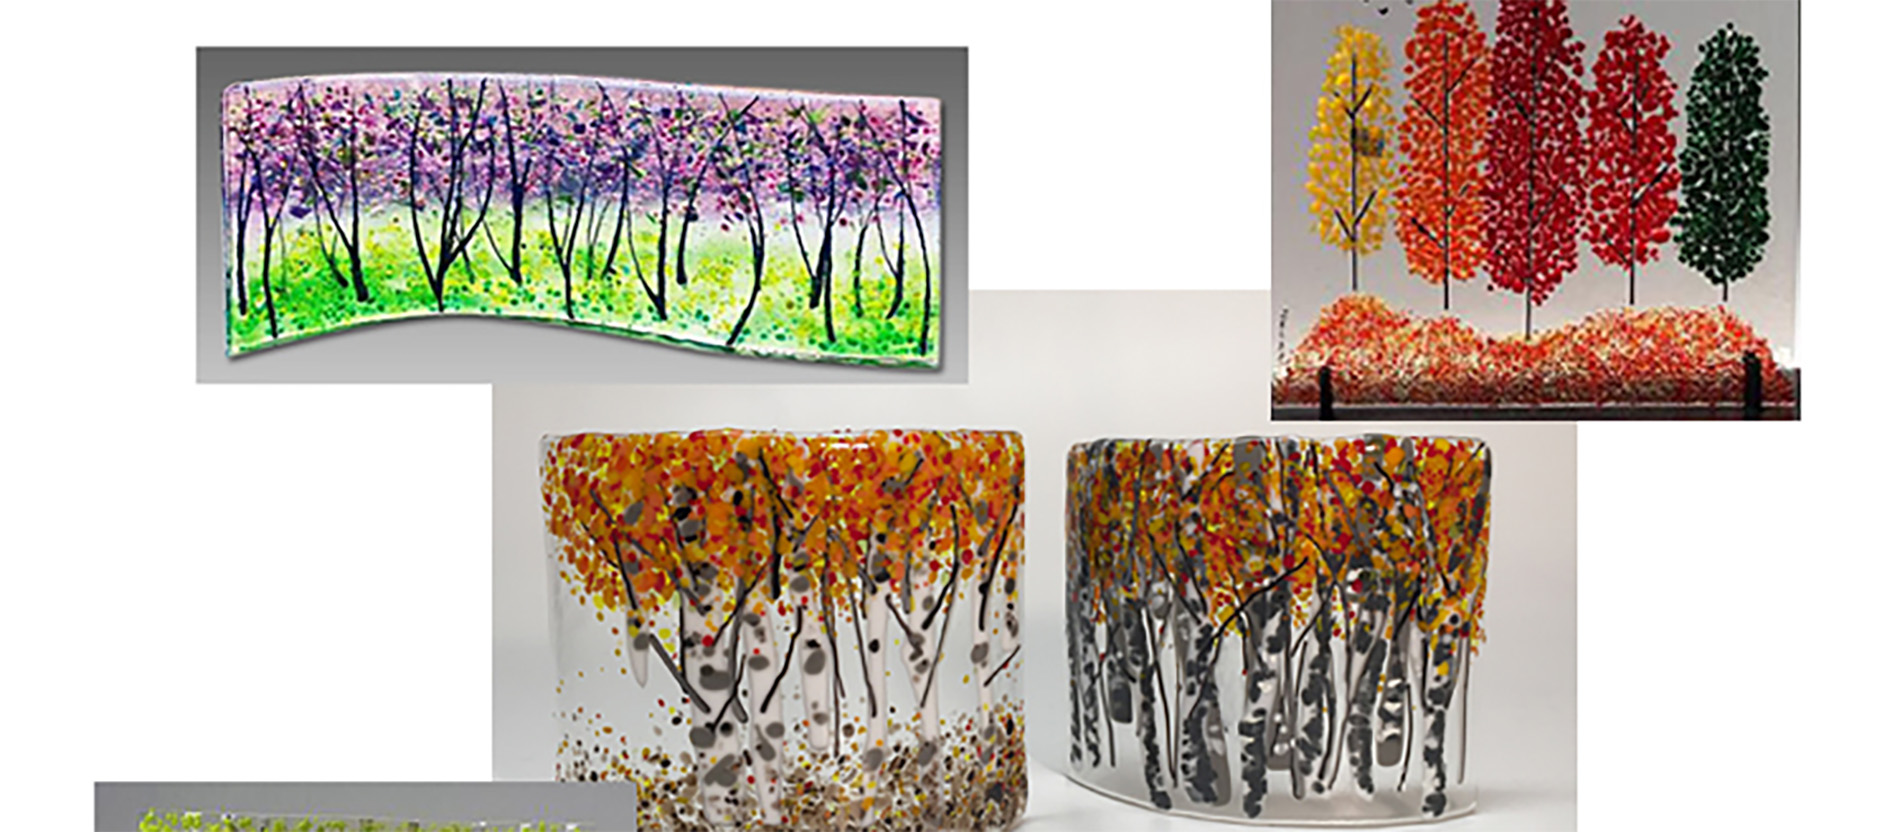 (Glass) Frit Happens - Landscapes Fusing Project